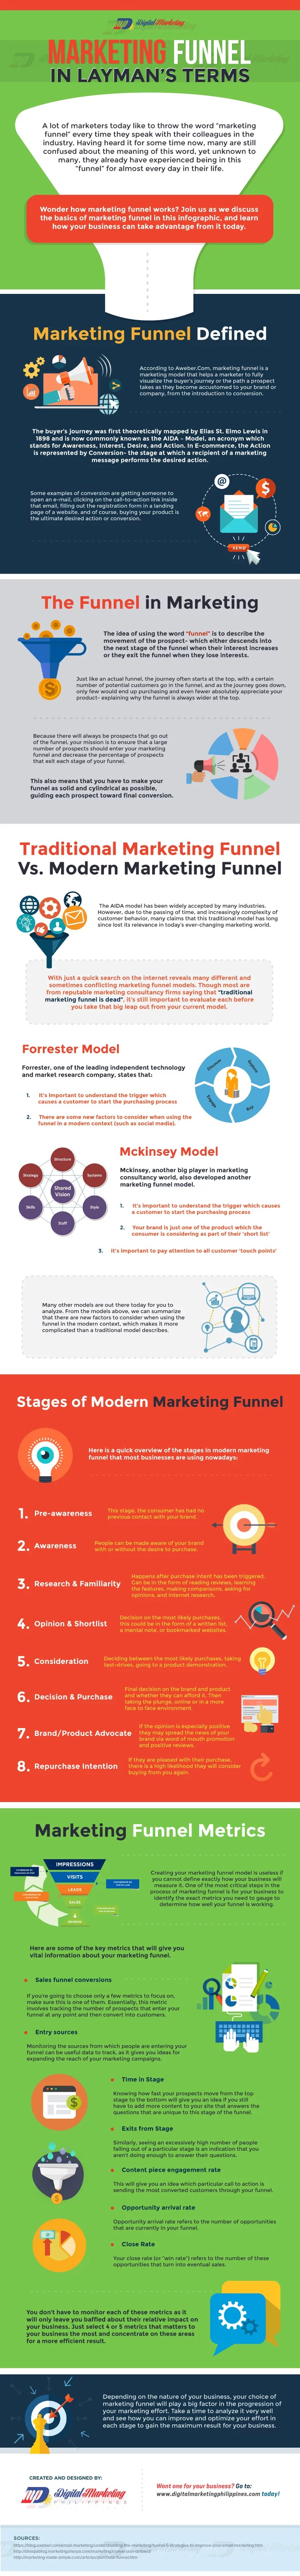 Marketing Funnel in Layman's Terms (Infographic) - An Infographic from Digital Marketing Philippines